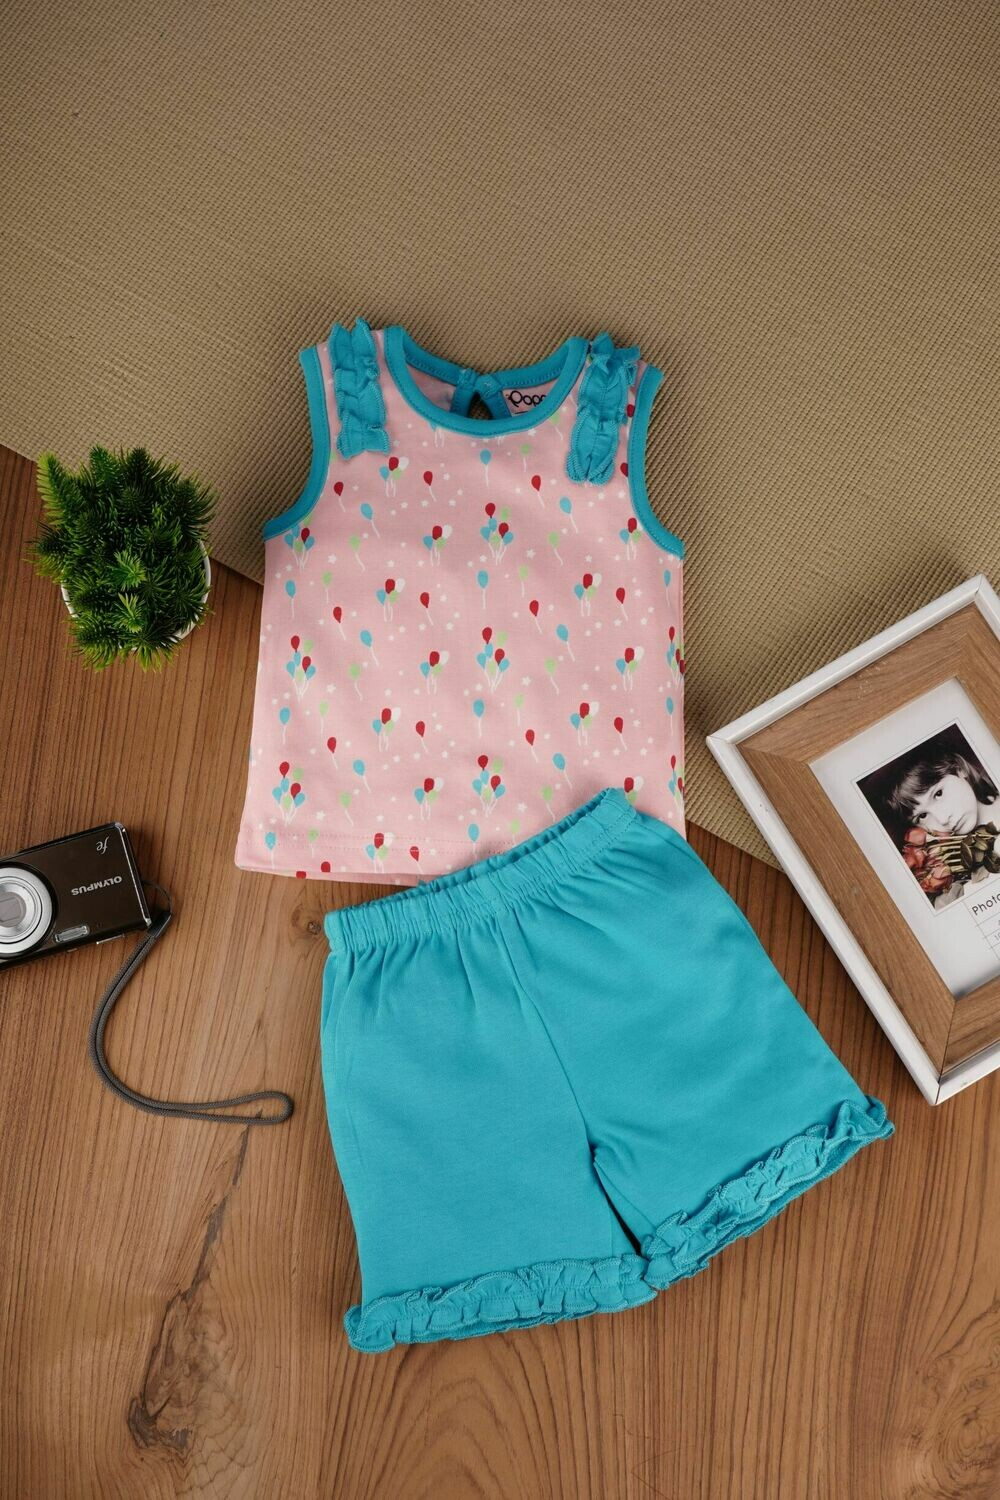 Clinsy S.Green / A.Blush Balloon Padding Sleeveless Top with Bloomer for Baby Girls